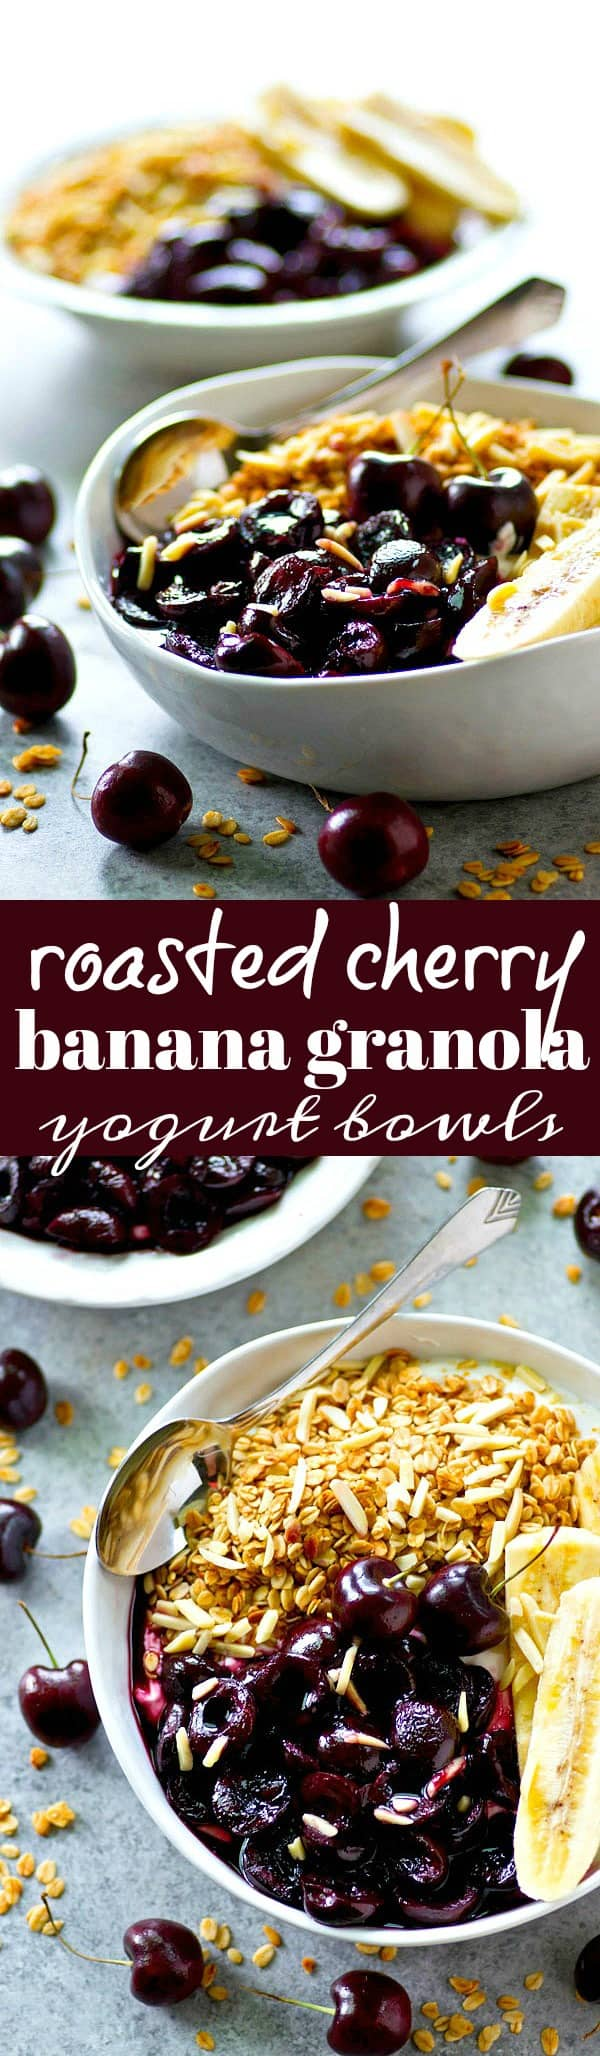 Juicy roasted cherries and sliced bananas are the ultimate breakfast combo in these granola yogurt bowls! Fast and nutritious for a busy morning breakfast.